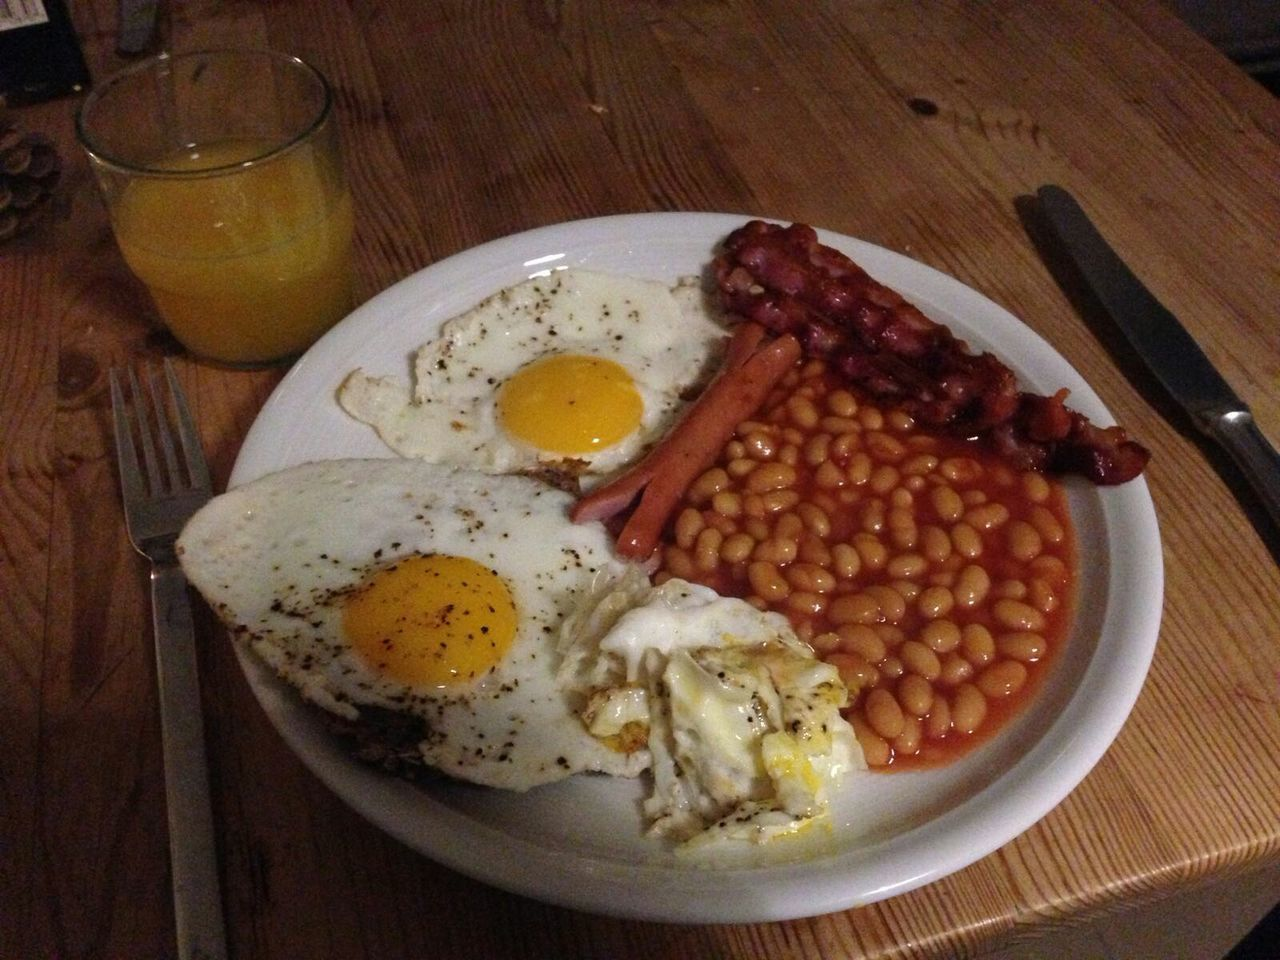 Egg Fried Egg Breakfast Egg Yolk Plate Indoors  Food Ready-to-eat Food And Drink Sunny Side Up Table Freshness No People English Breakfast Bacon Healthy Eating Egg White Day Close-up Brown Bread